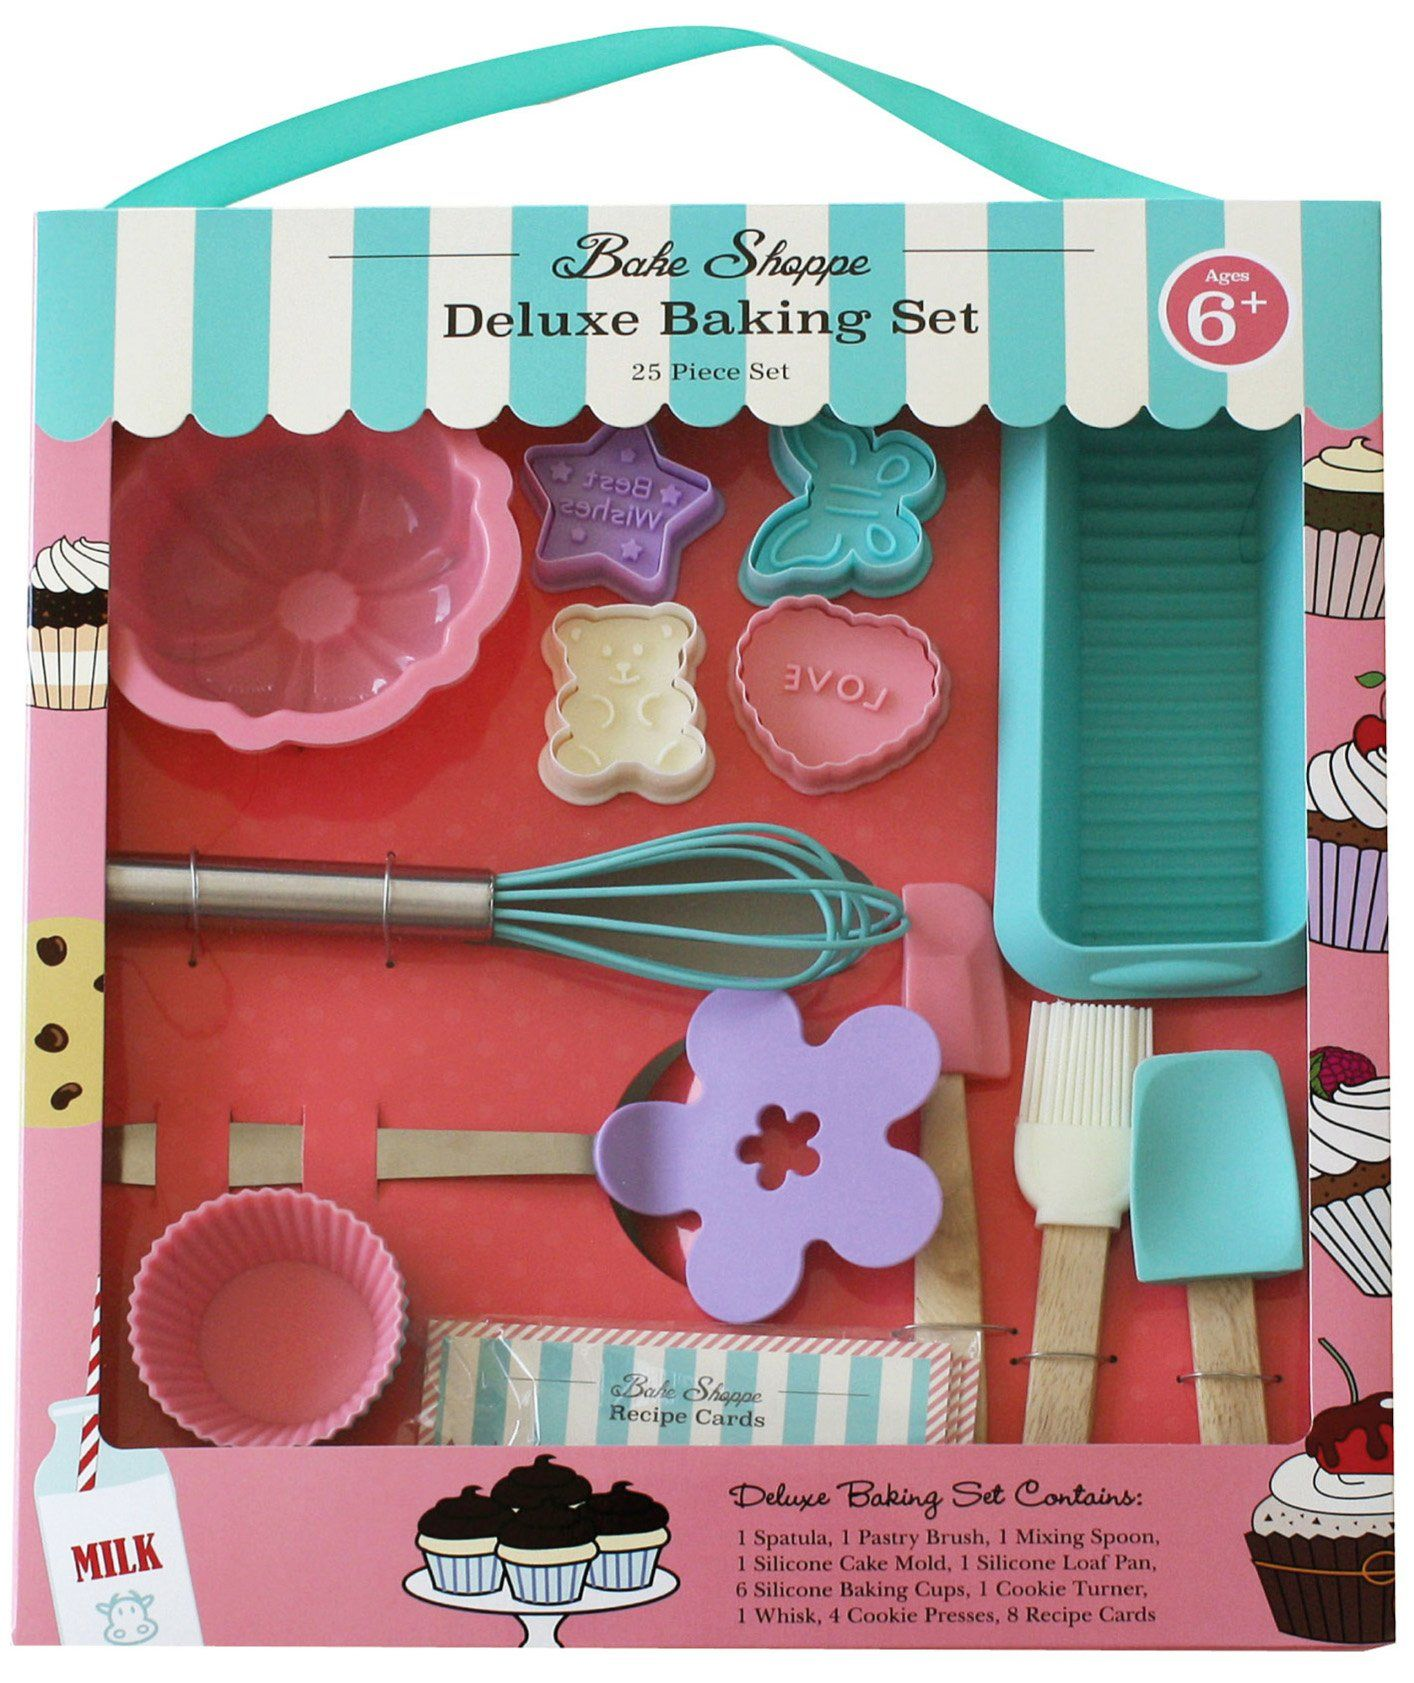 Best Toy Kitchen For 2 Year Old Uk